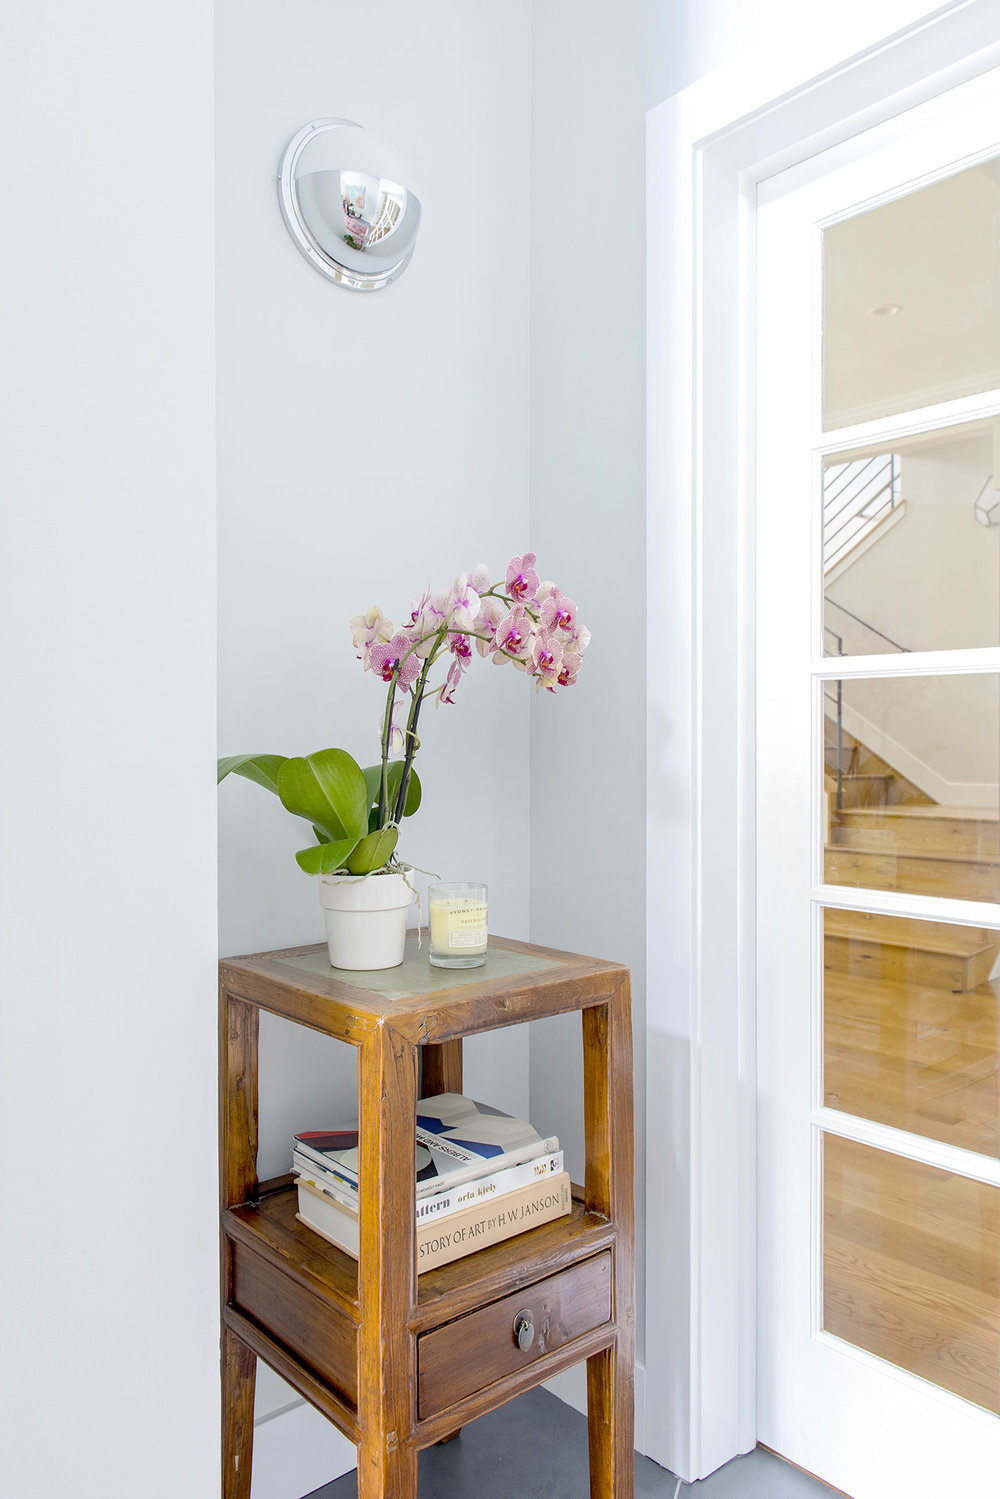 1085 entry orchid.jpg